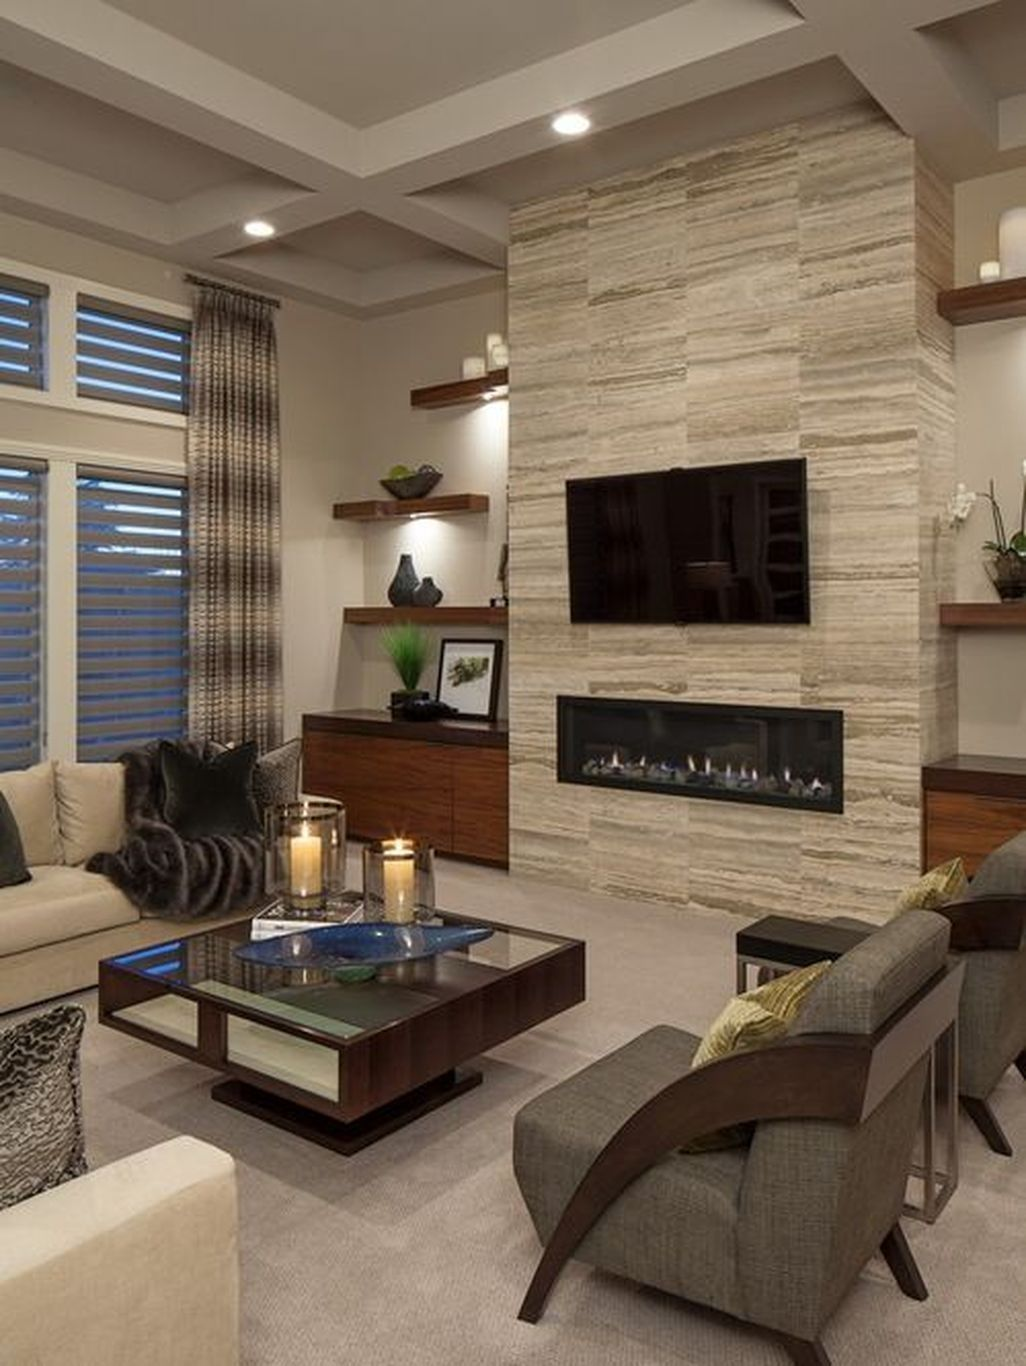 Nice awesome small living room decoration ideas on a budget